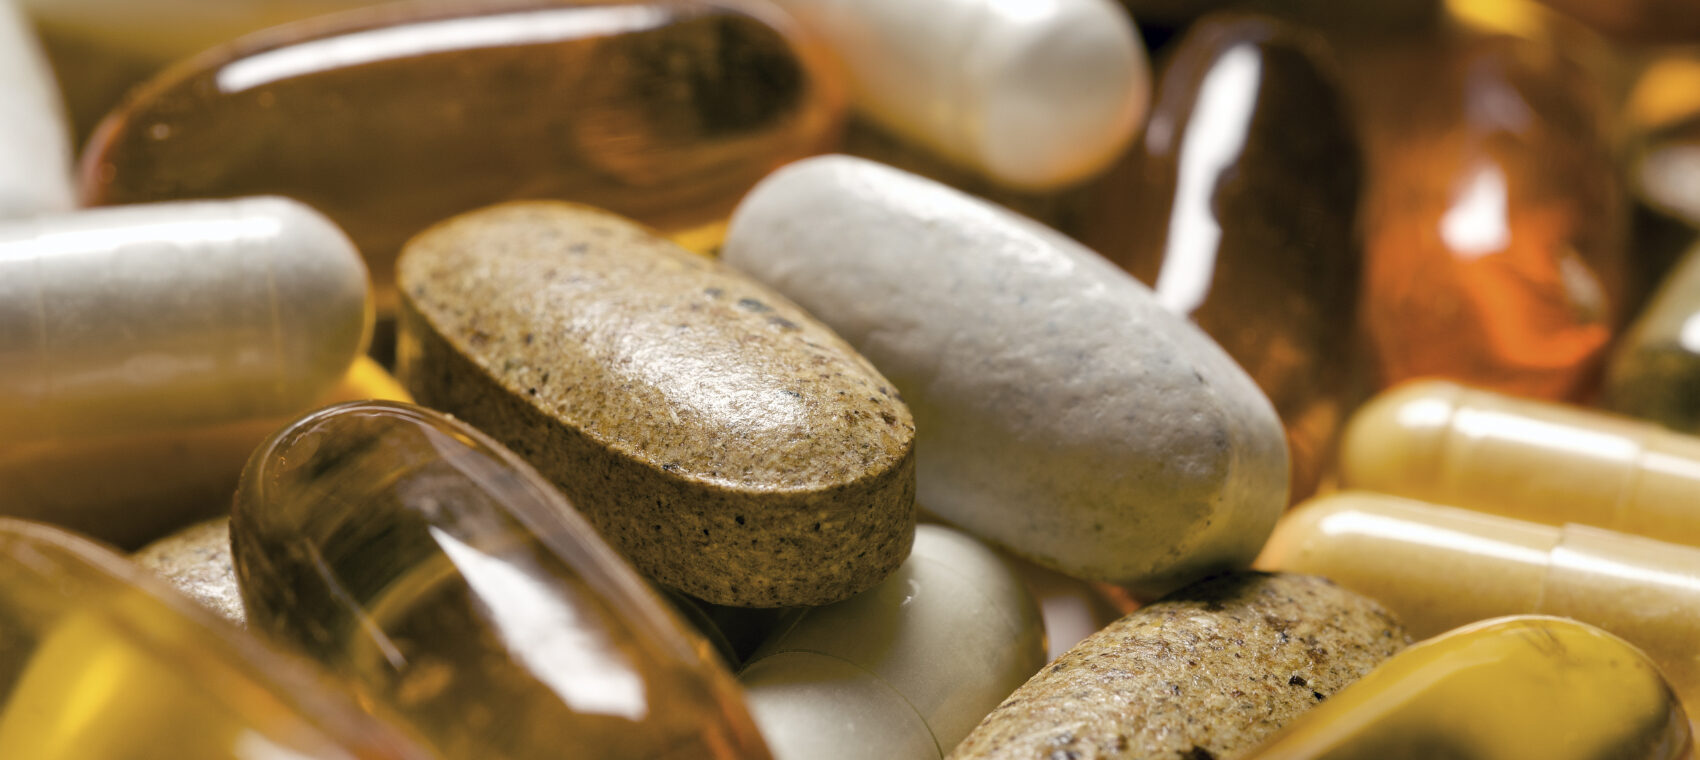 Vitamins and supplements: are they beneficial or not?